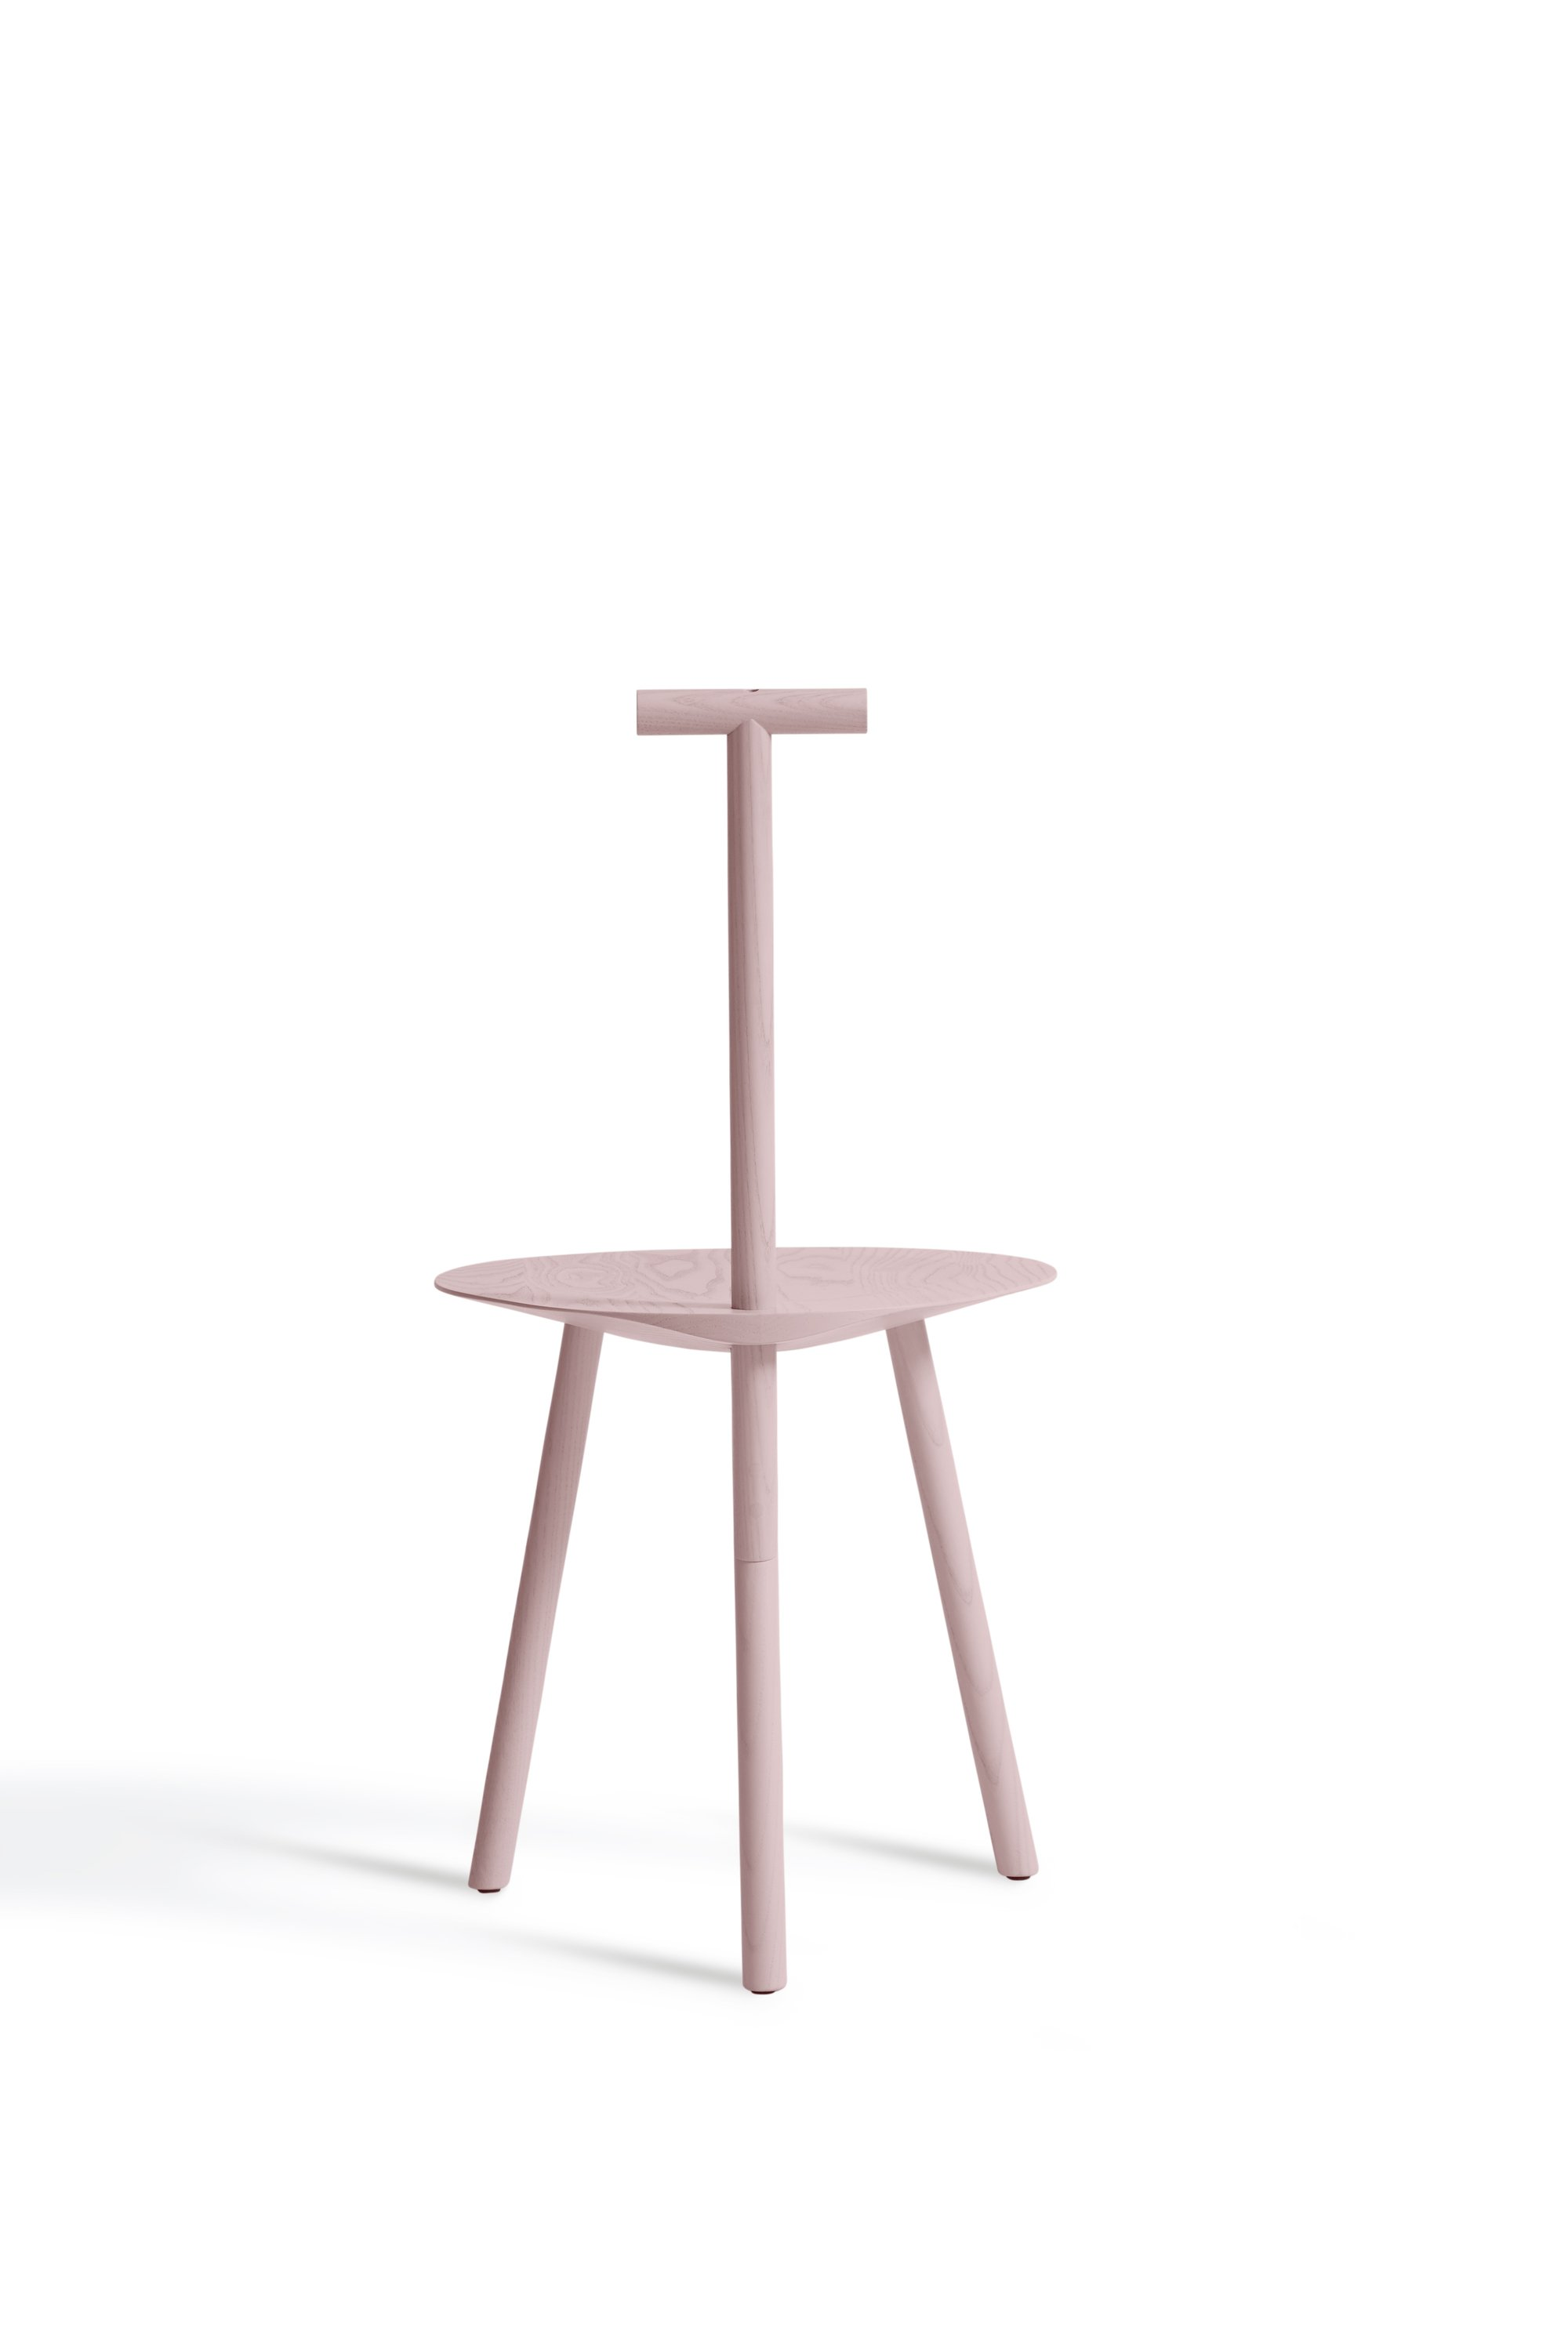 Spade Chair by Faye Toogood for Please Wait to be Seated